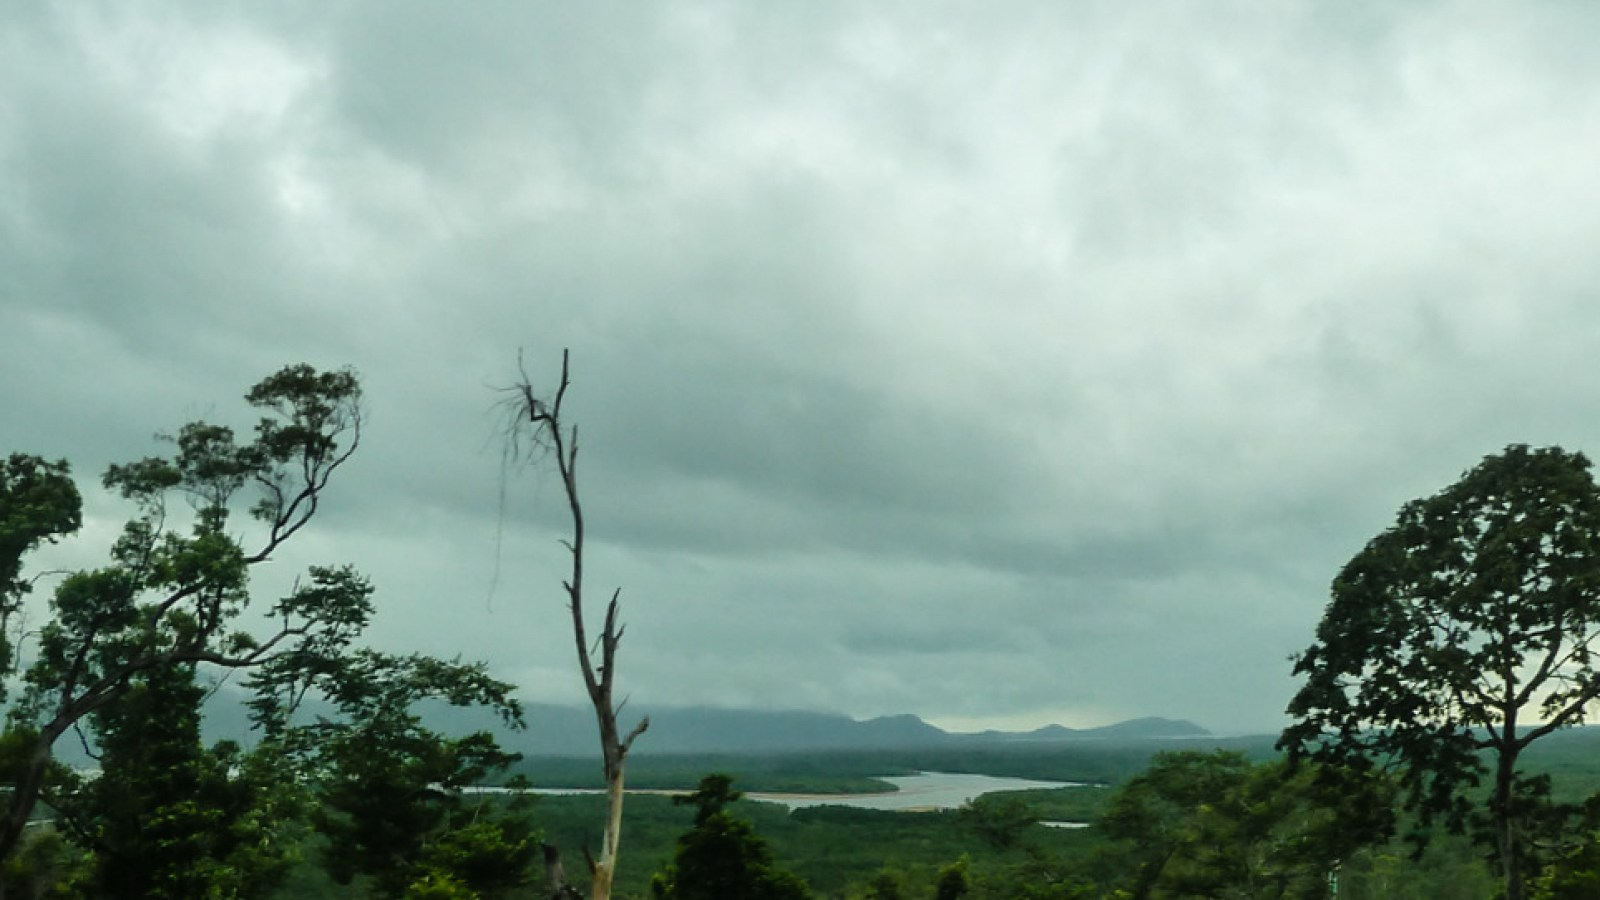 a photo of the west coast of hinchinbrook island as seen from the mainland.